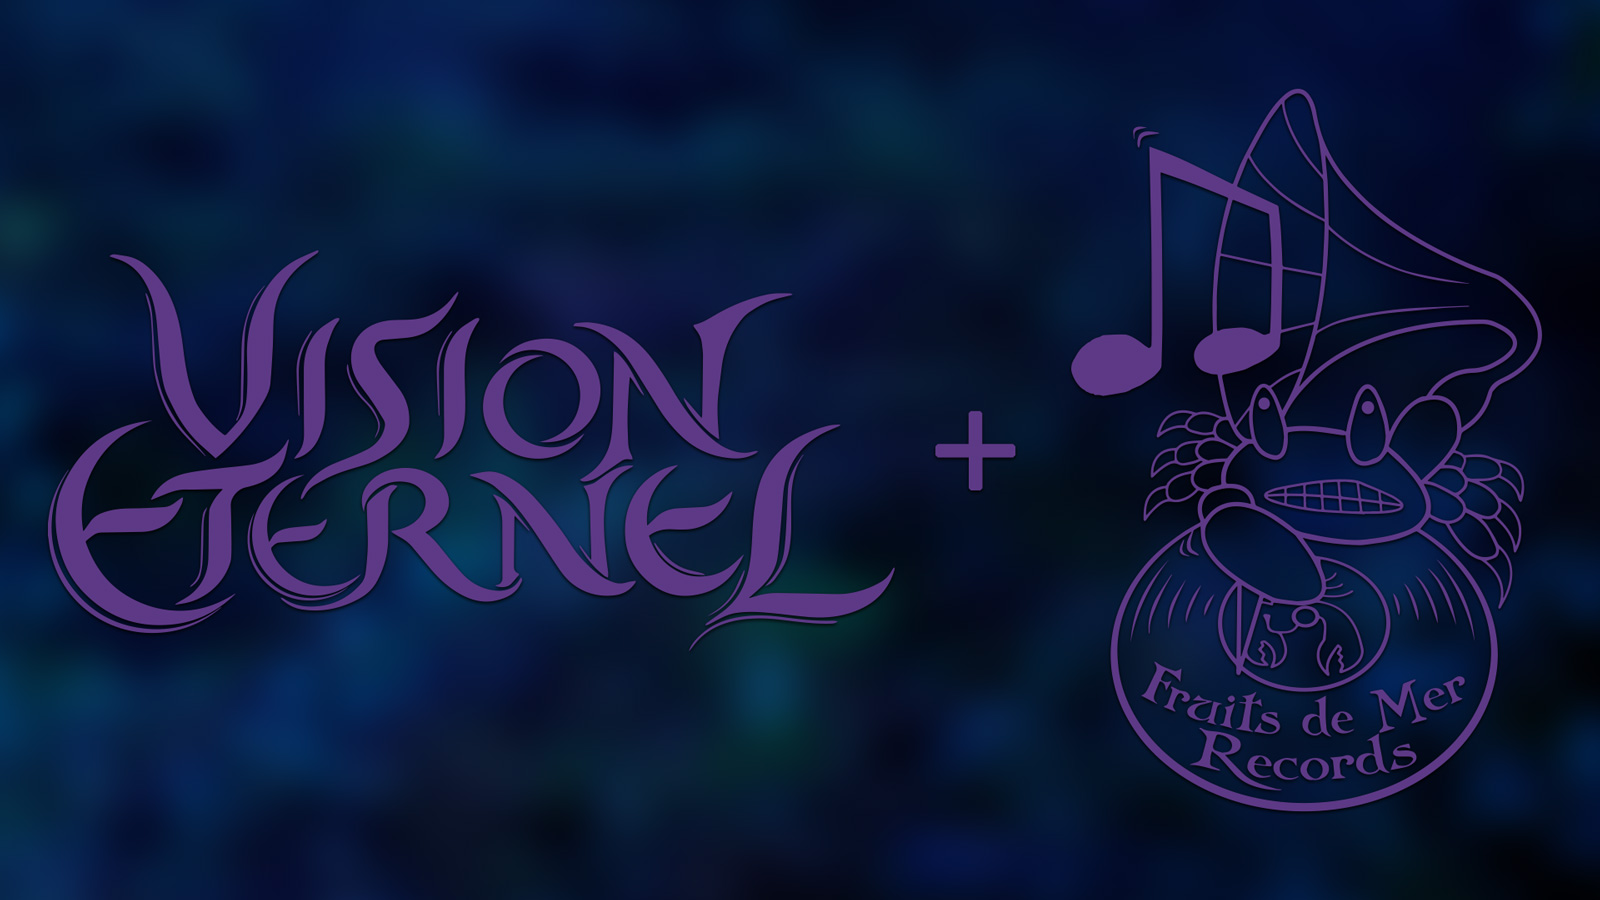 Vision Eternel To Collaborate With Fruits De Mer Records